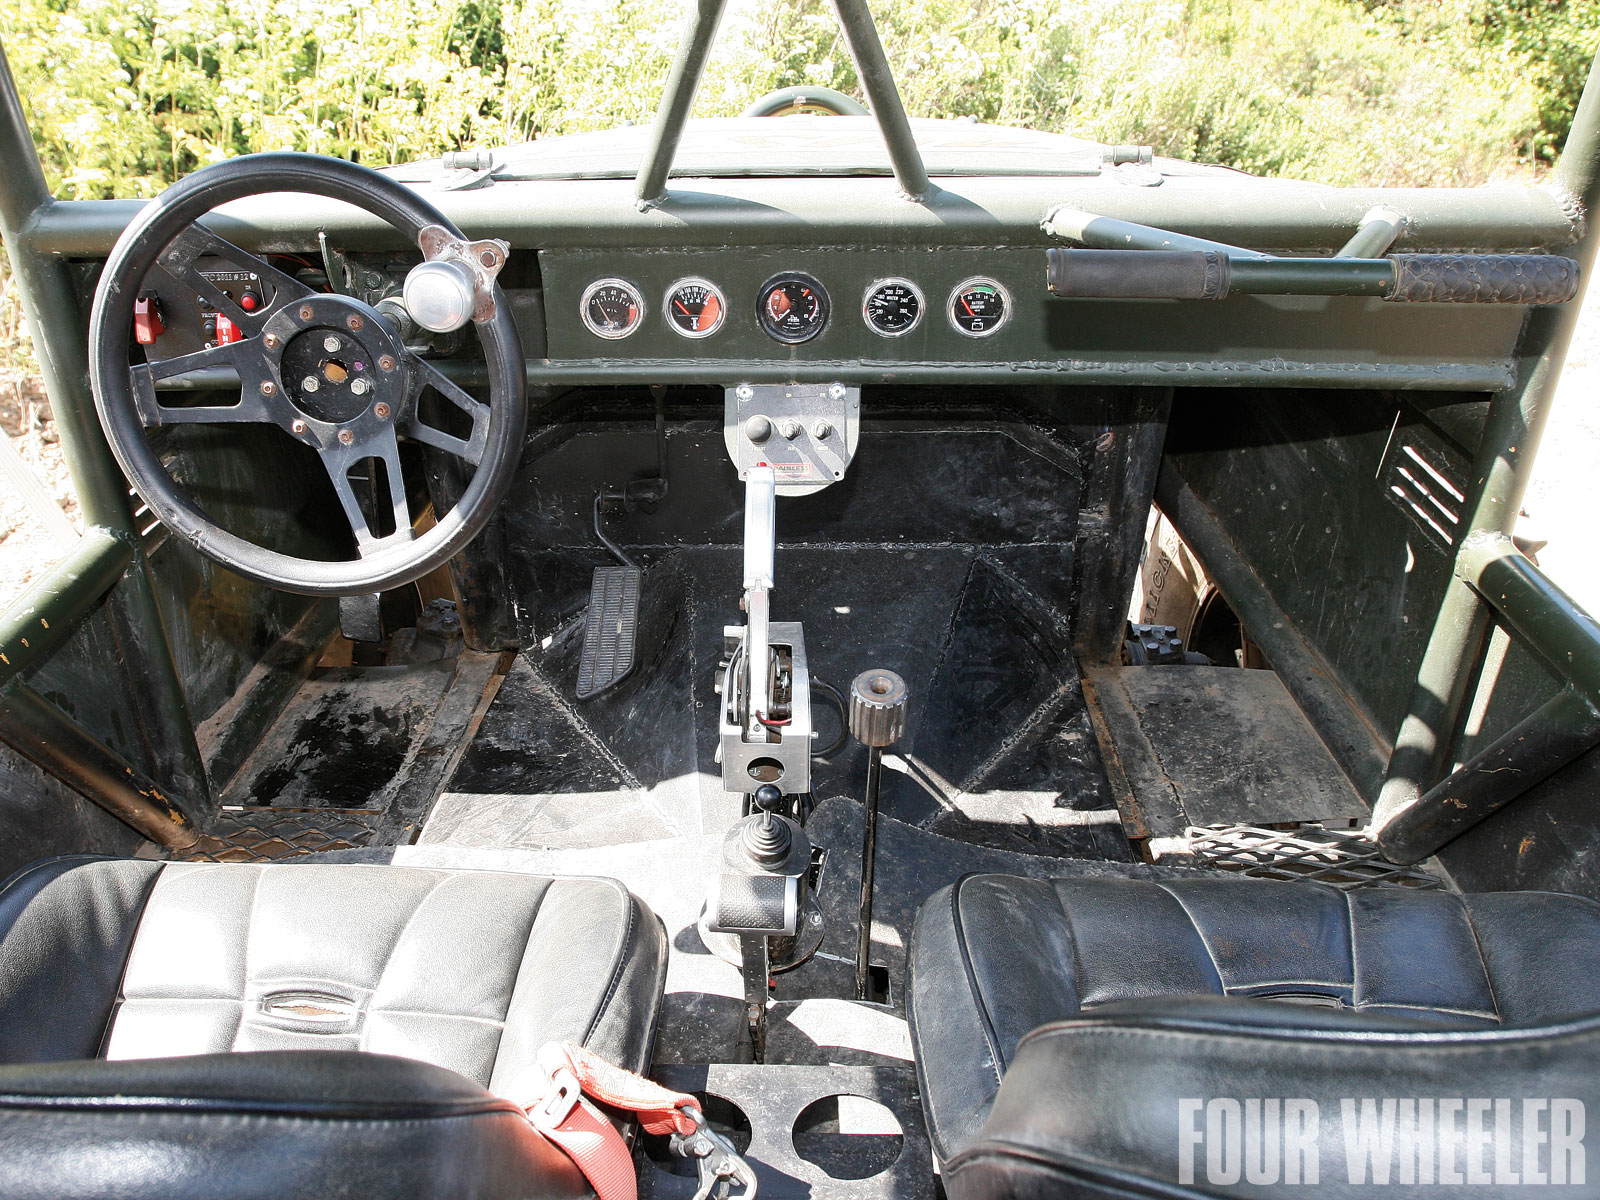 Brooke Spencer Ron Adams 2009 Custom Fj40 Buggy Interior Shot